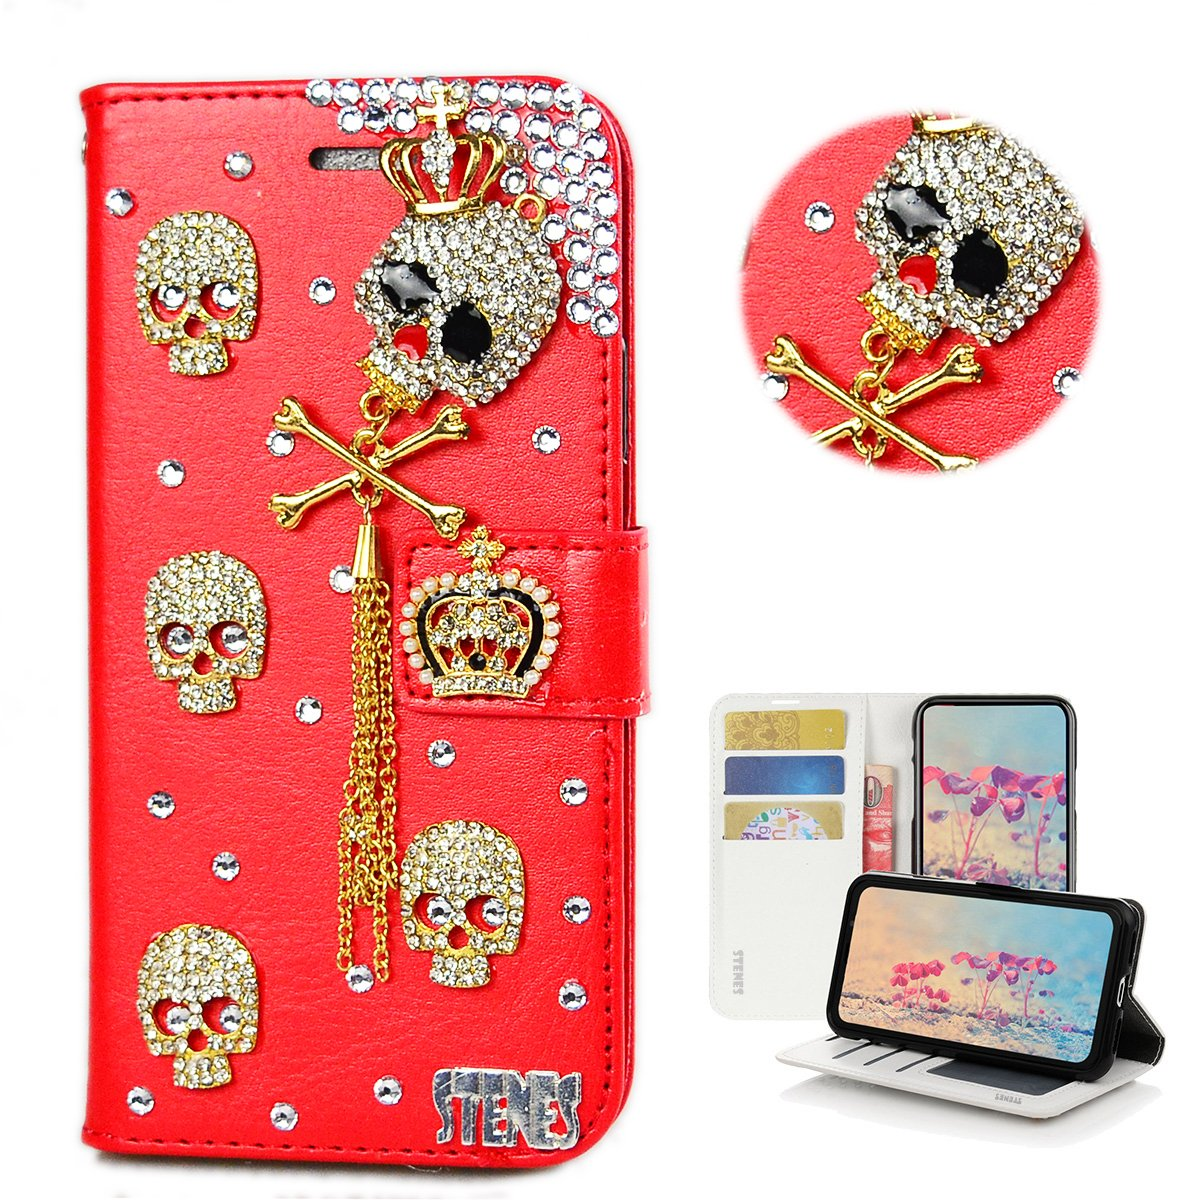 STENES iPhone 8 Plus Case - Stylish - 3D Handmade Bling Crystal Crown Skull Tassel Pendant Design Wallet Credit Card Slots Fold Stand Leather Cover for iPhone 7 Plus/iPhone 8 Plus - Red